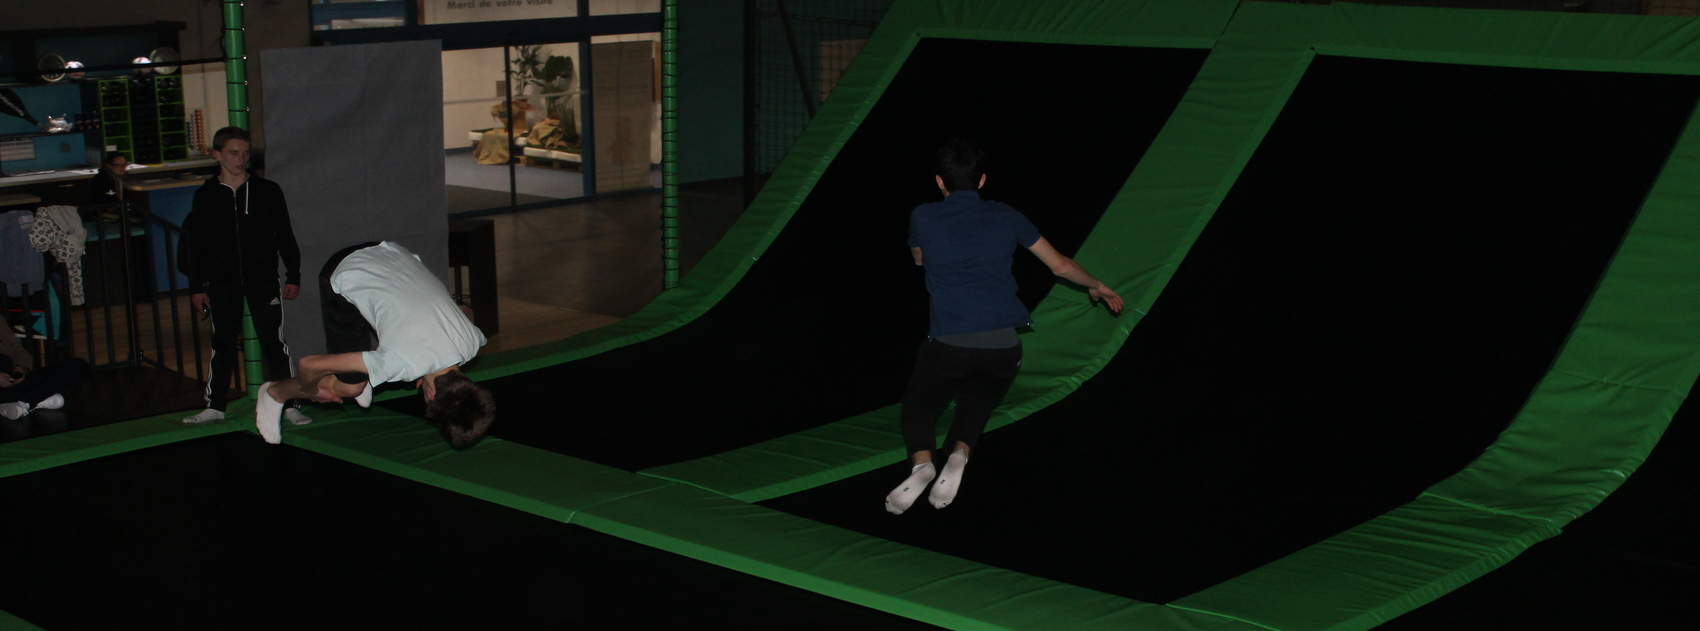 trampoline3.png